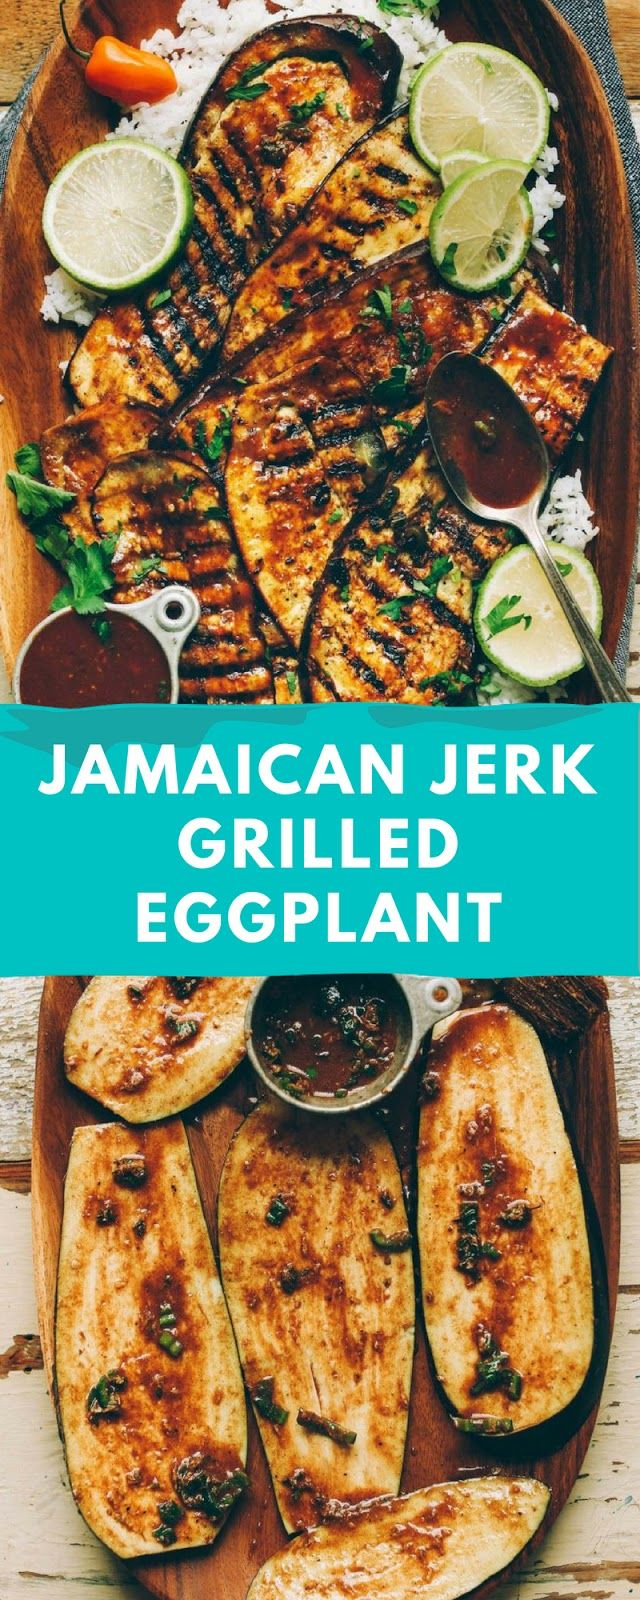 Jamaican Jerk Grilled Eggplant (With images) | Jamaican ...